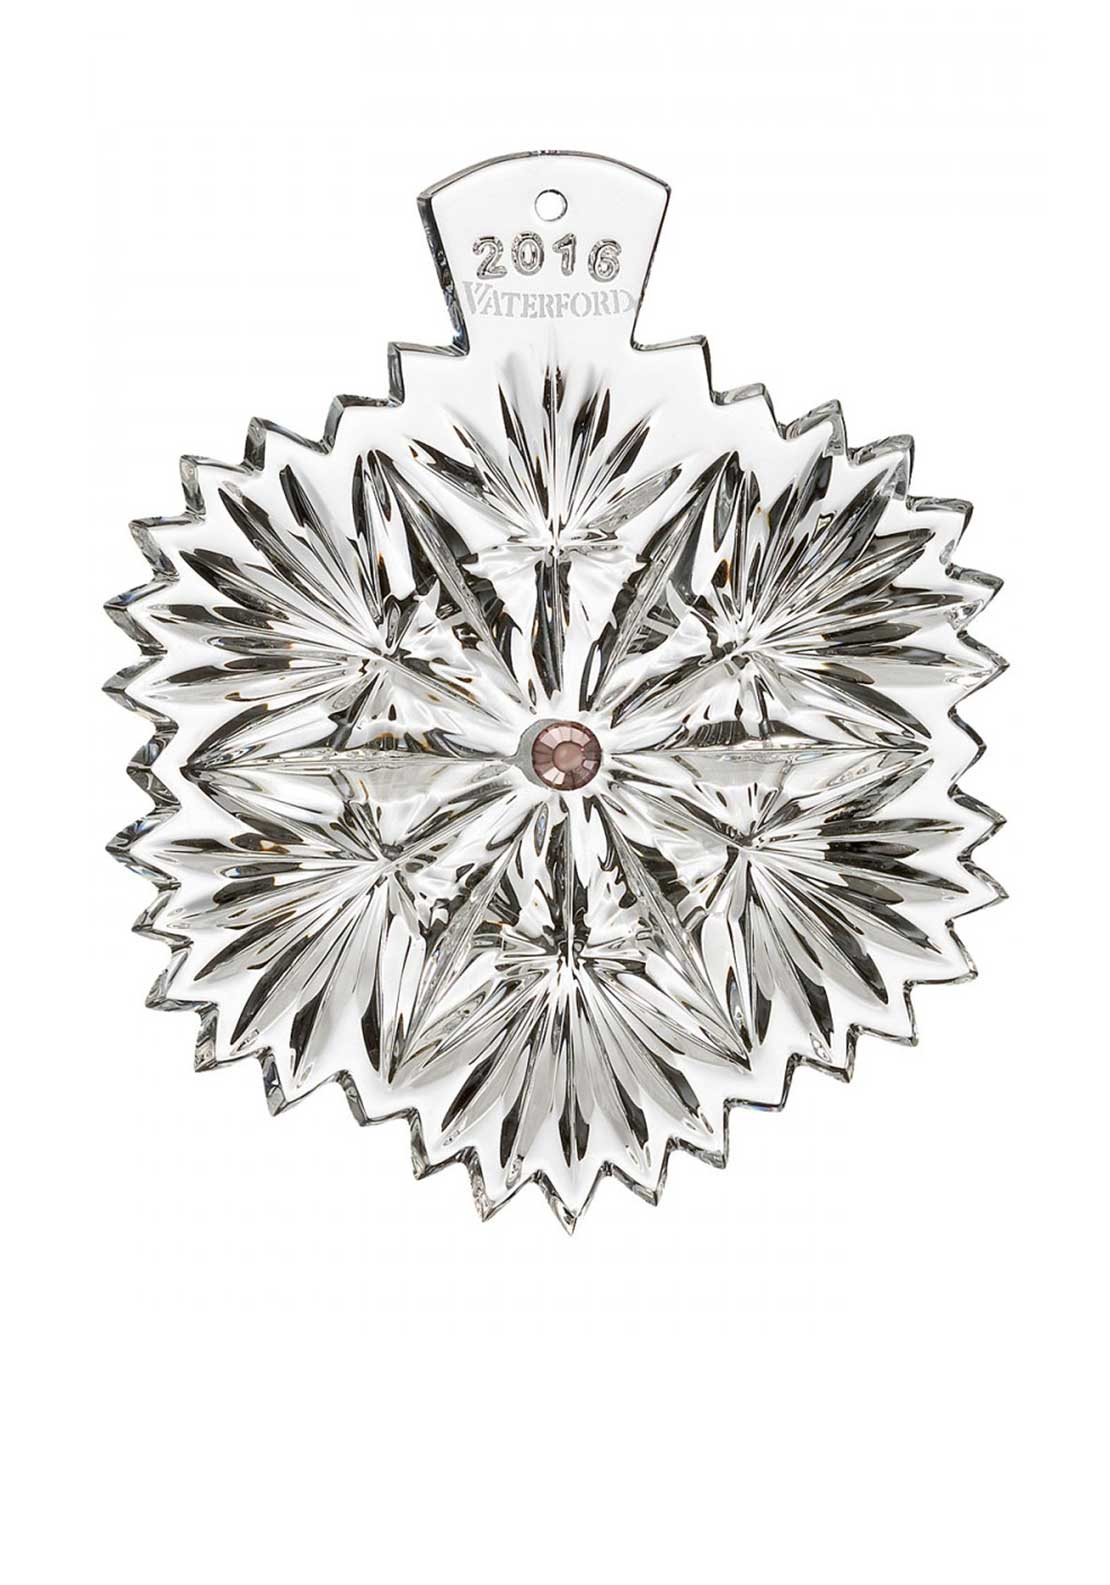 Waterford Crystal 2016 Snowflake Wishes Serenity Decoration